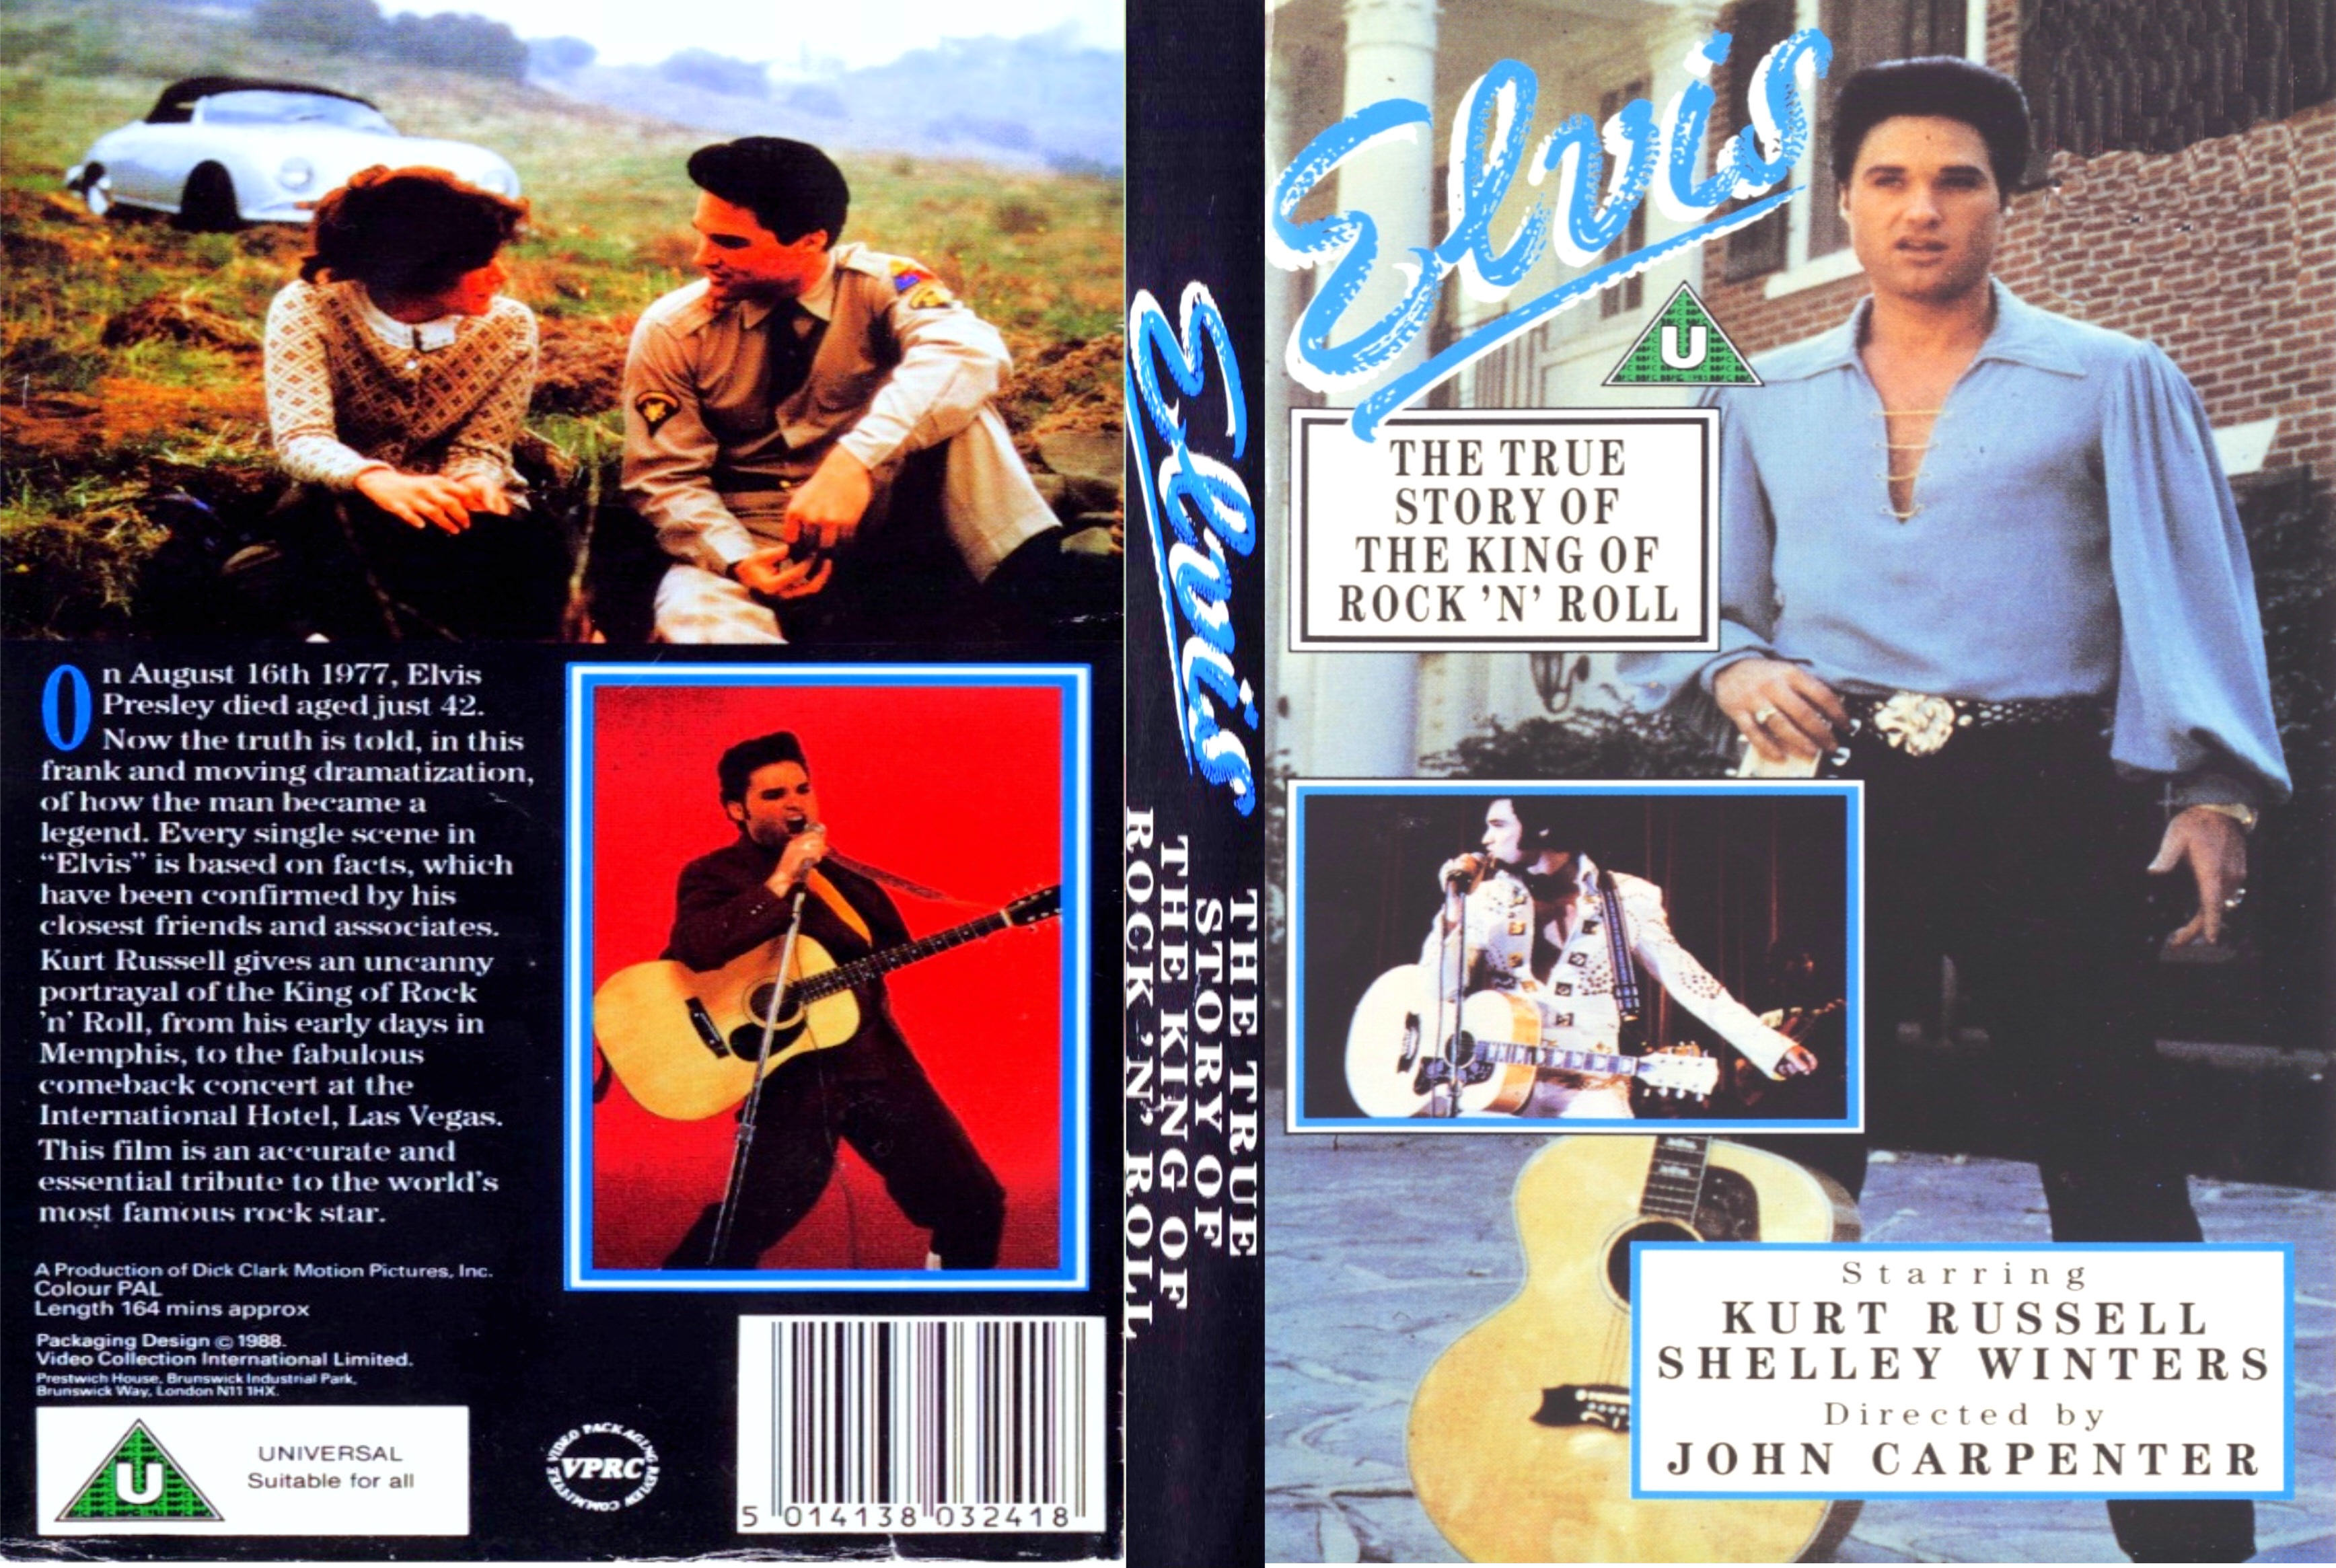 http://www.elvisdvdcovers.com/dvdlarge%20e%20-g/ELVIS%20THE%20MOVIE%20DVD%20COVER.jpg